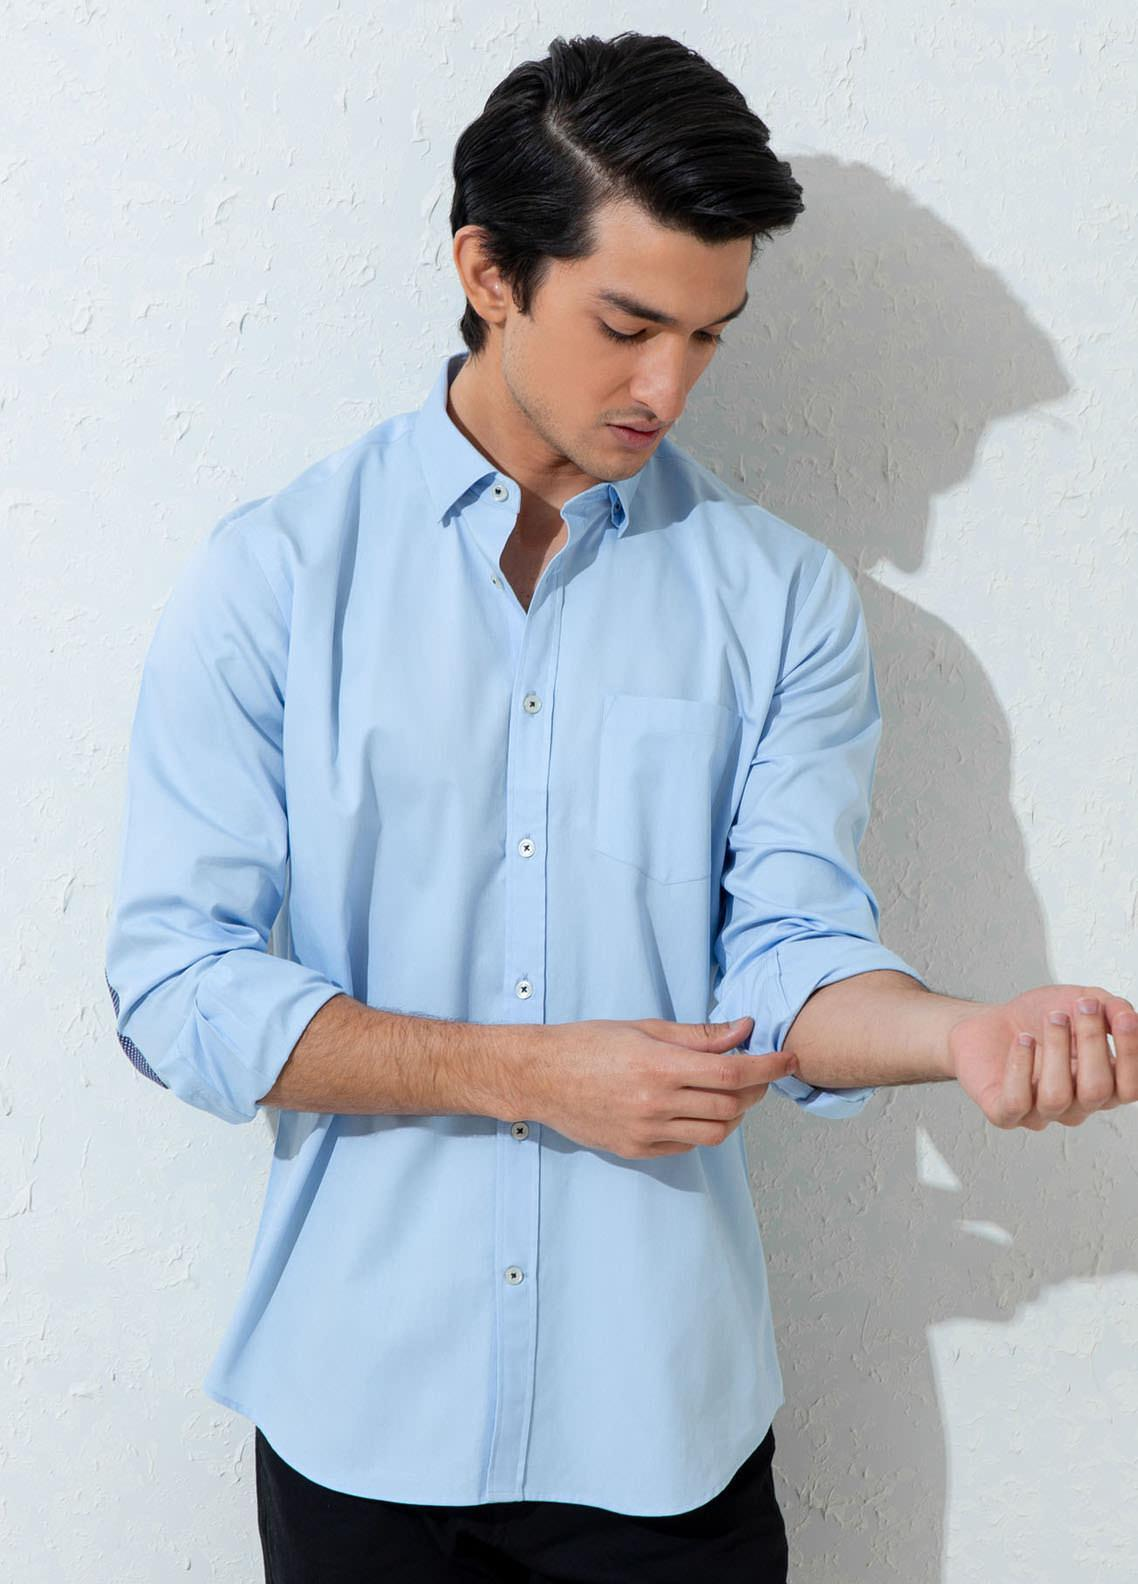 Brumano Cotton Casual Shirts for Men -  BM21SH Blue Twill Elbow Patch